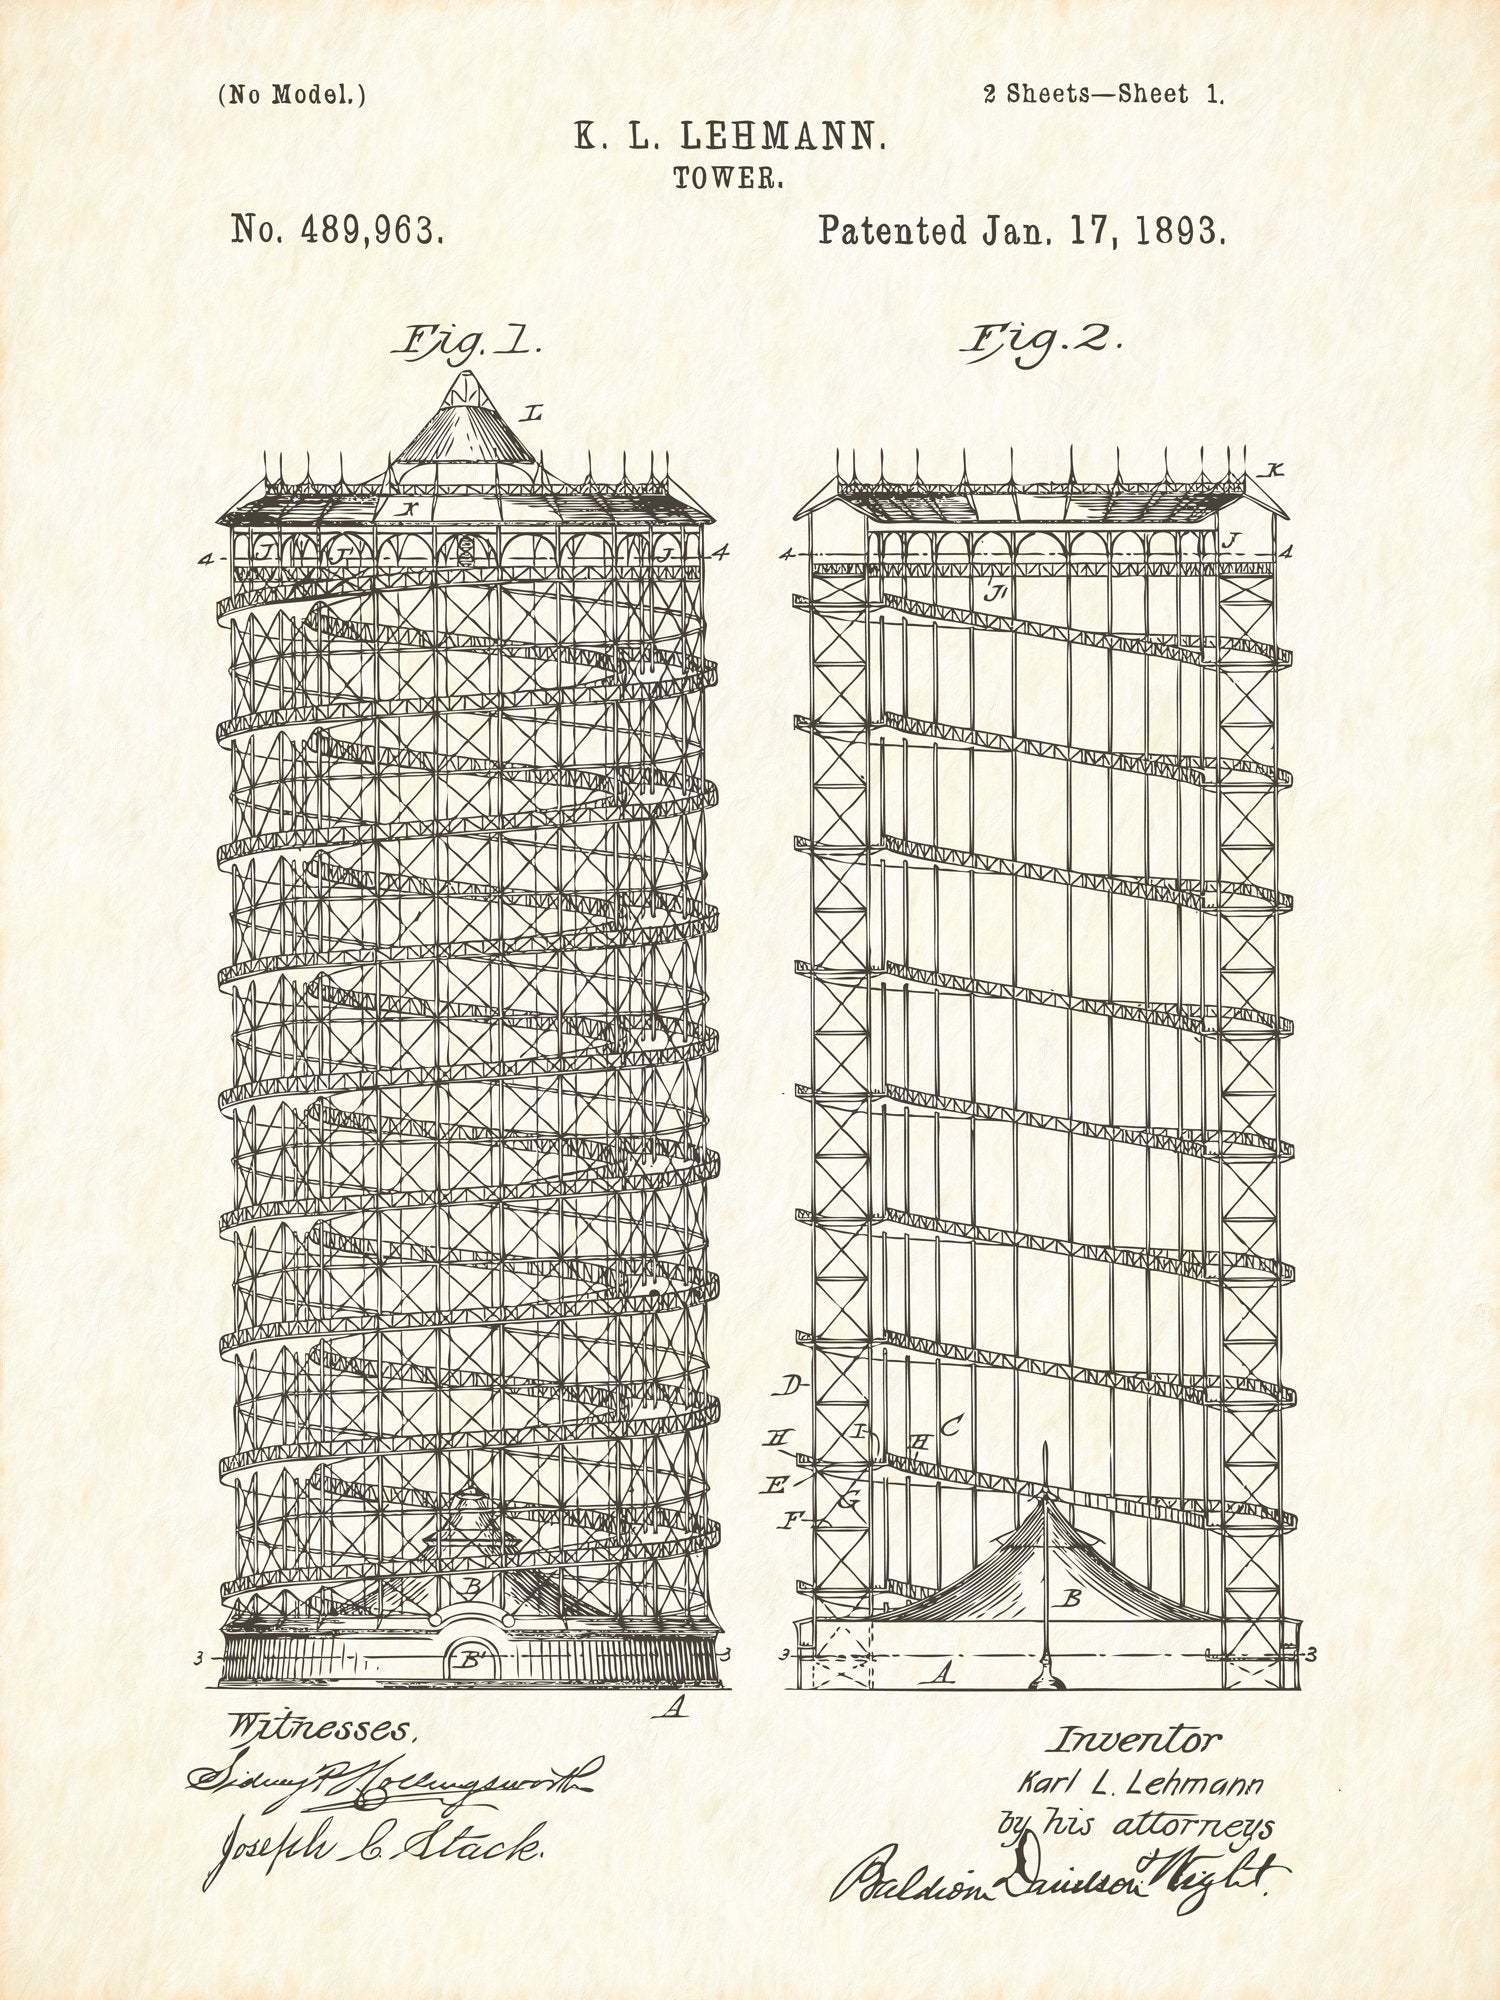 U.S. Patent No. 489963-1 Tower Reworked, Series 1